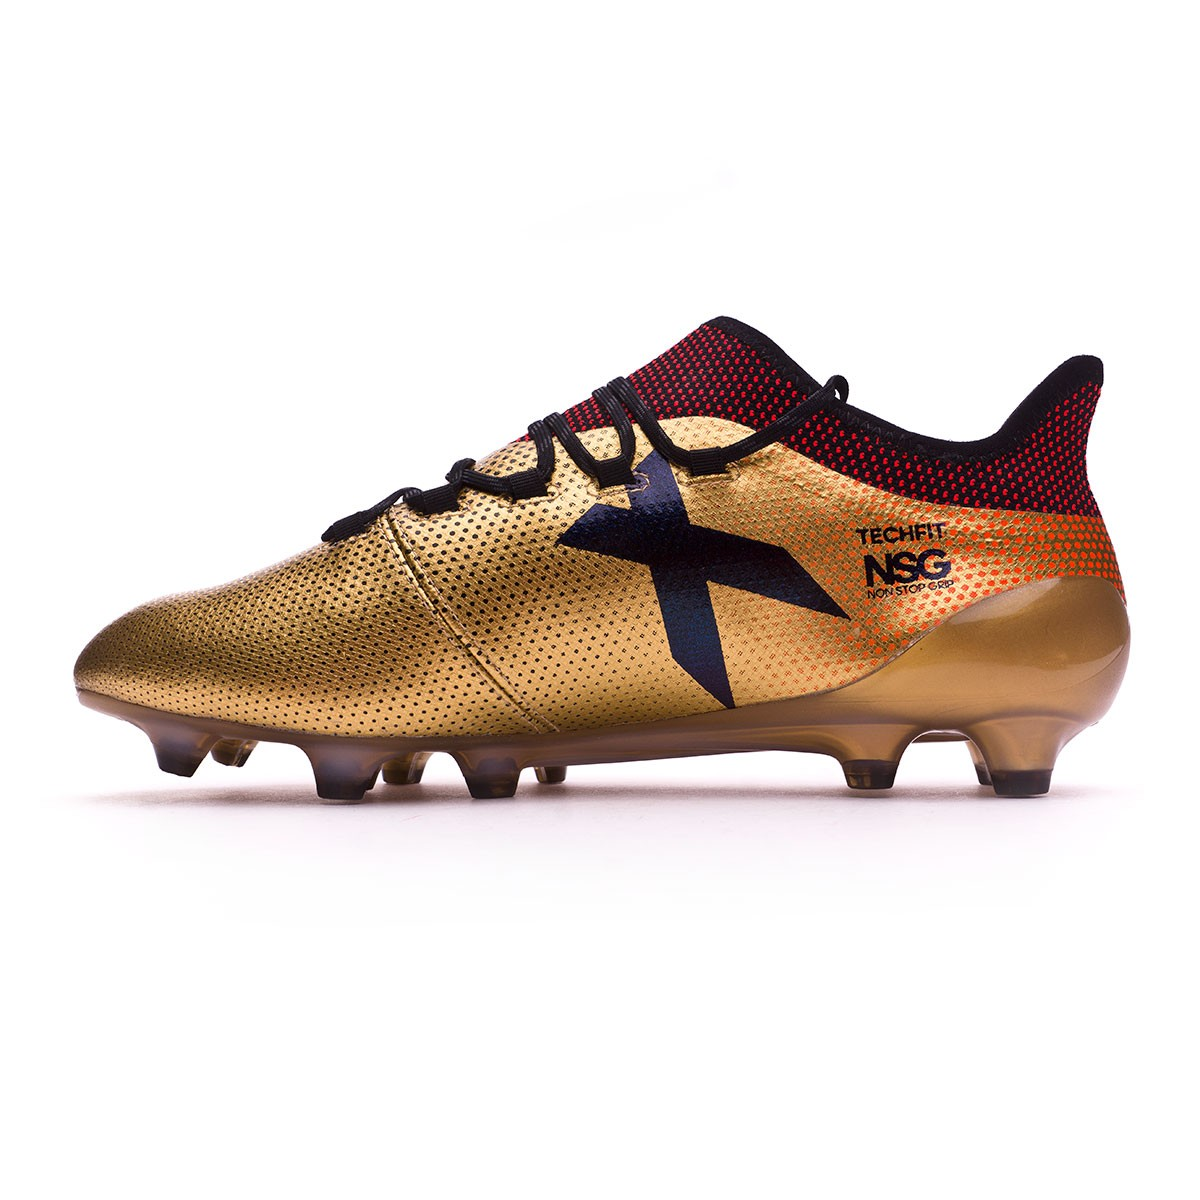 5b6589f2e11f Football Boots adidas X 17.1 FG Tactile gold metallic-Core black-Solar red  - Tienda de fútbol Fútbol Emotion